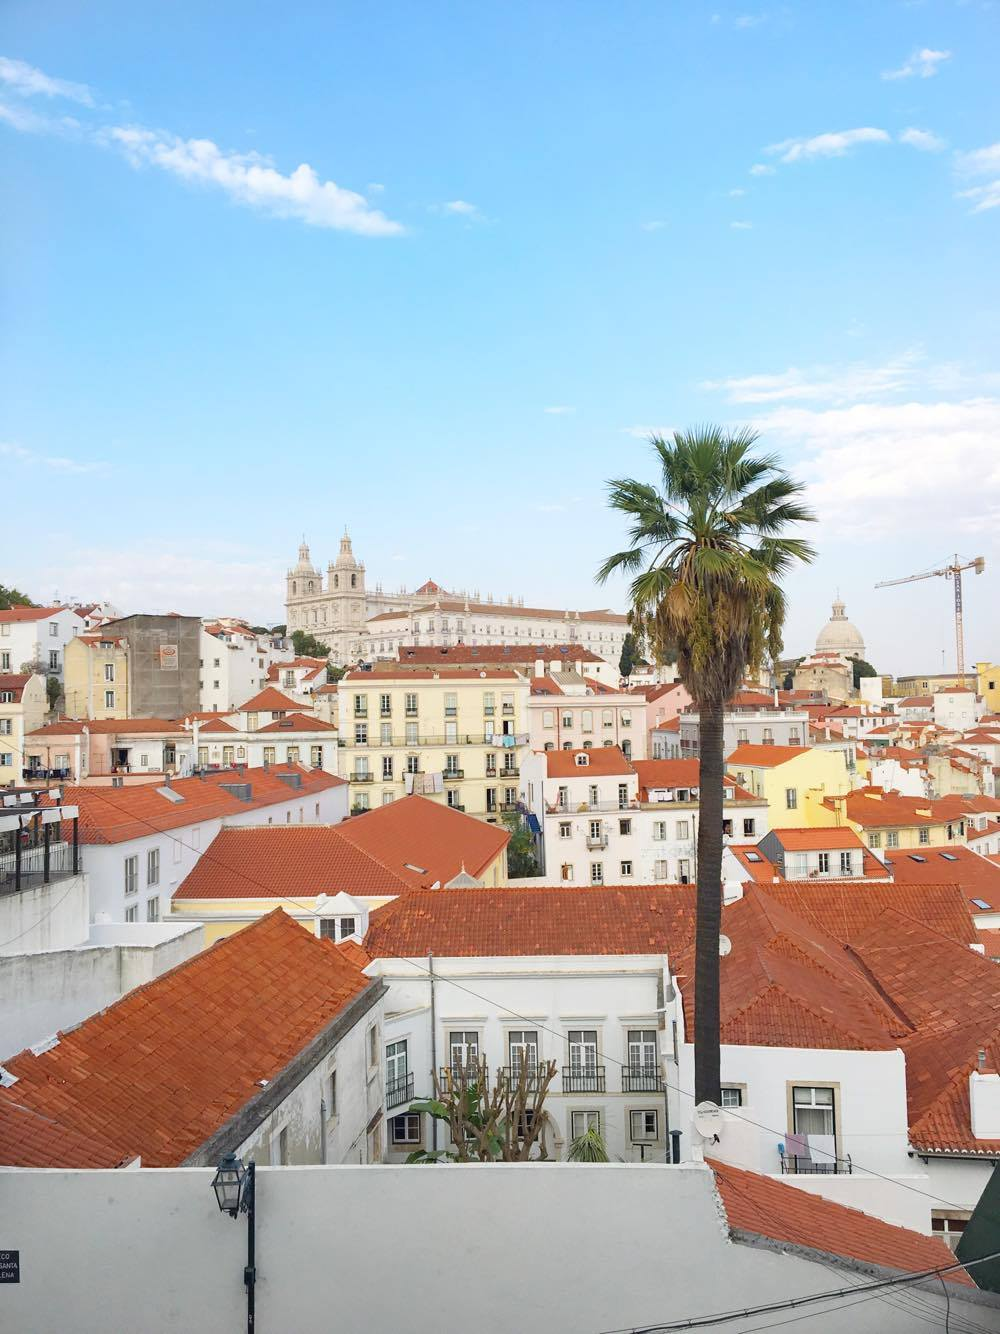 Terra-cotta rooftops in Lisbon, Portugal